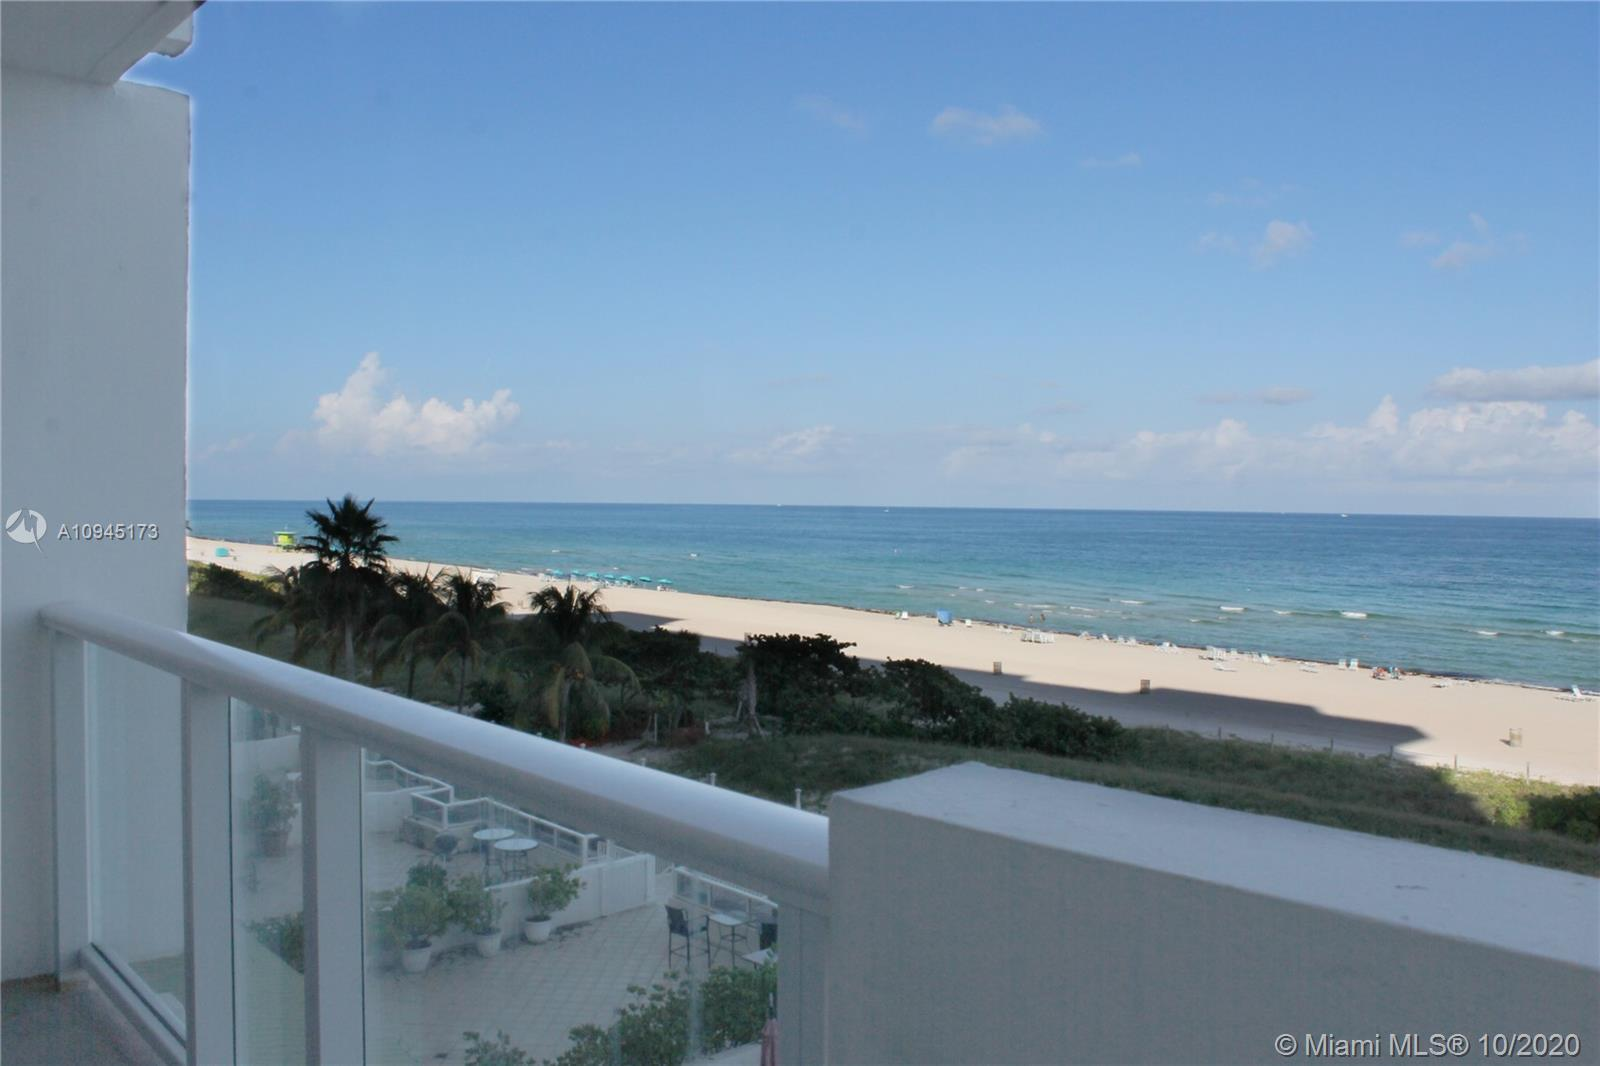 BEST PRICE IN TOWN FOR OCEAN FRONT UNIT + DESIGNATED PARKING SPACE INCLUDED IN PRICE .( Value $15.00